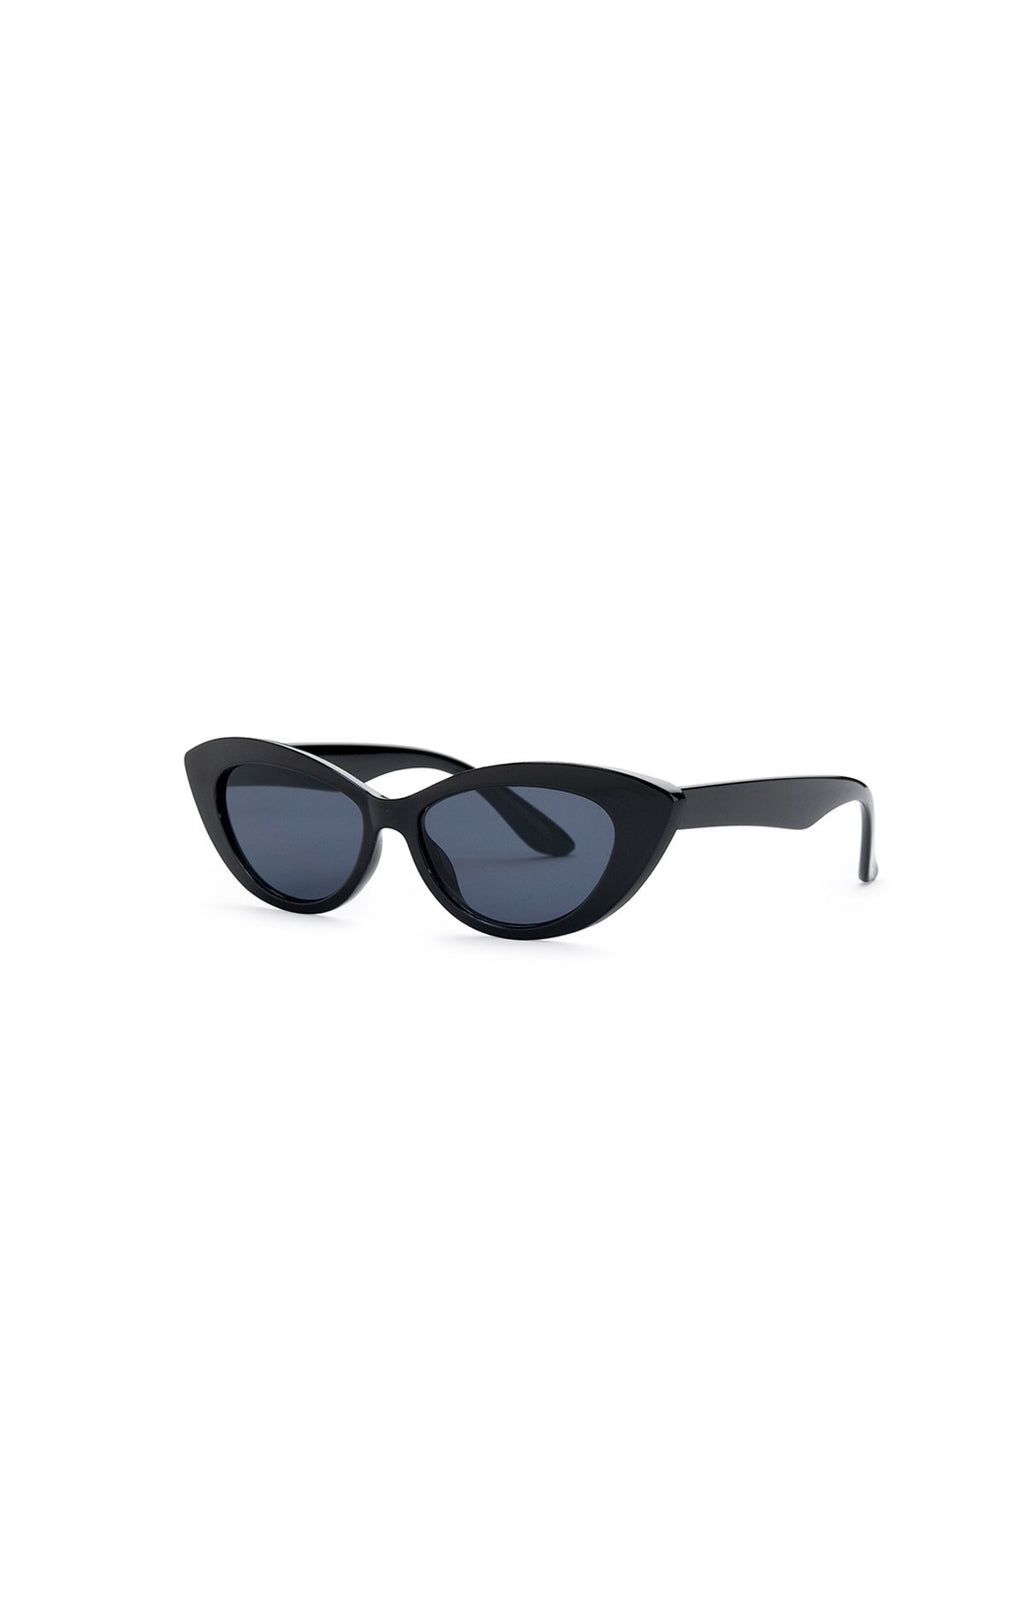 REALITY BYRDLAND GLAM ROCK SUNGLASSES